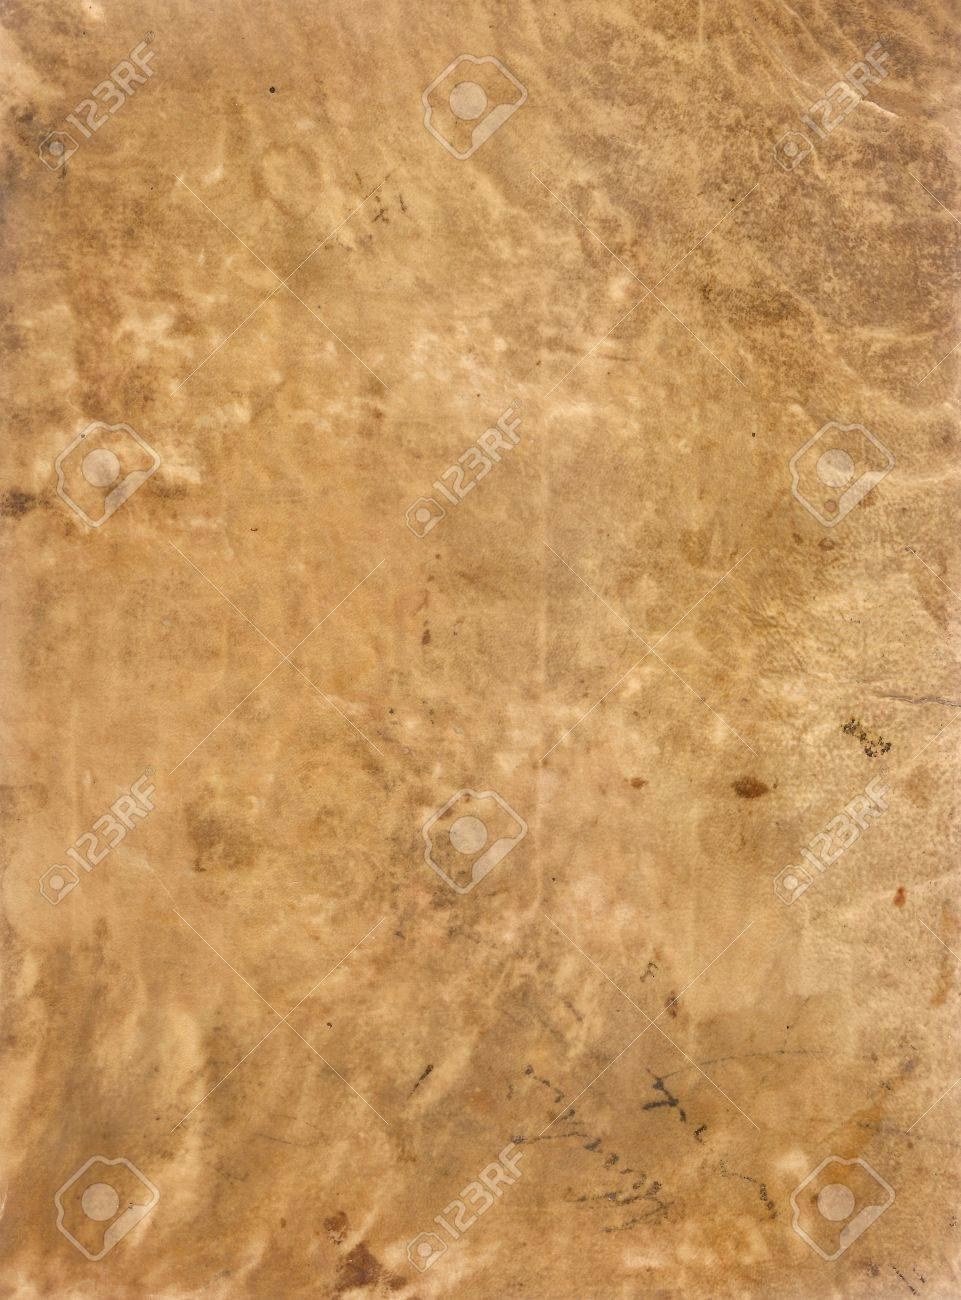 Original Antique Seventeenth Century Sheepskin PARCHMENT PAPER Texture With Space For Your Design Or Text